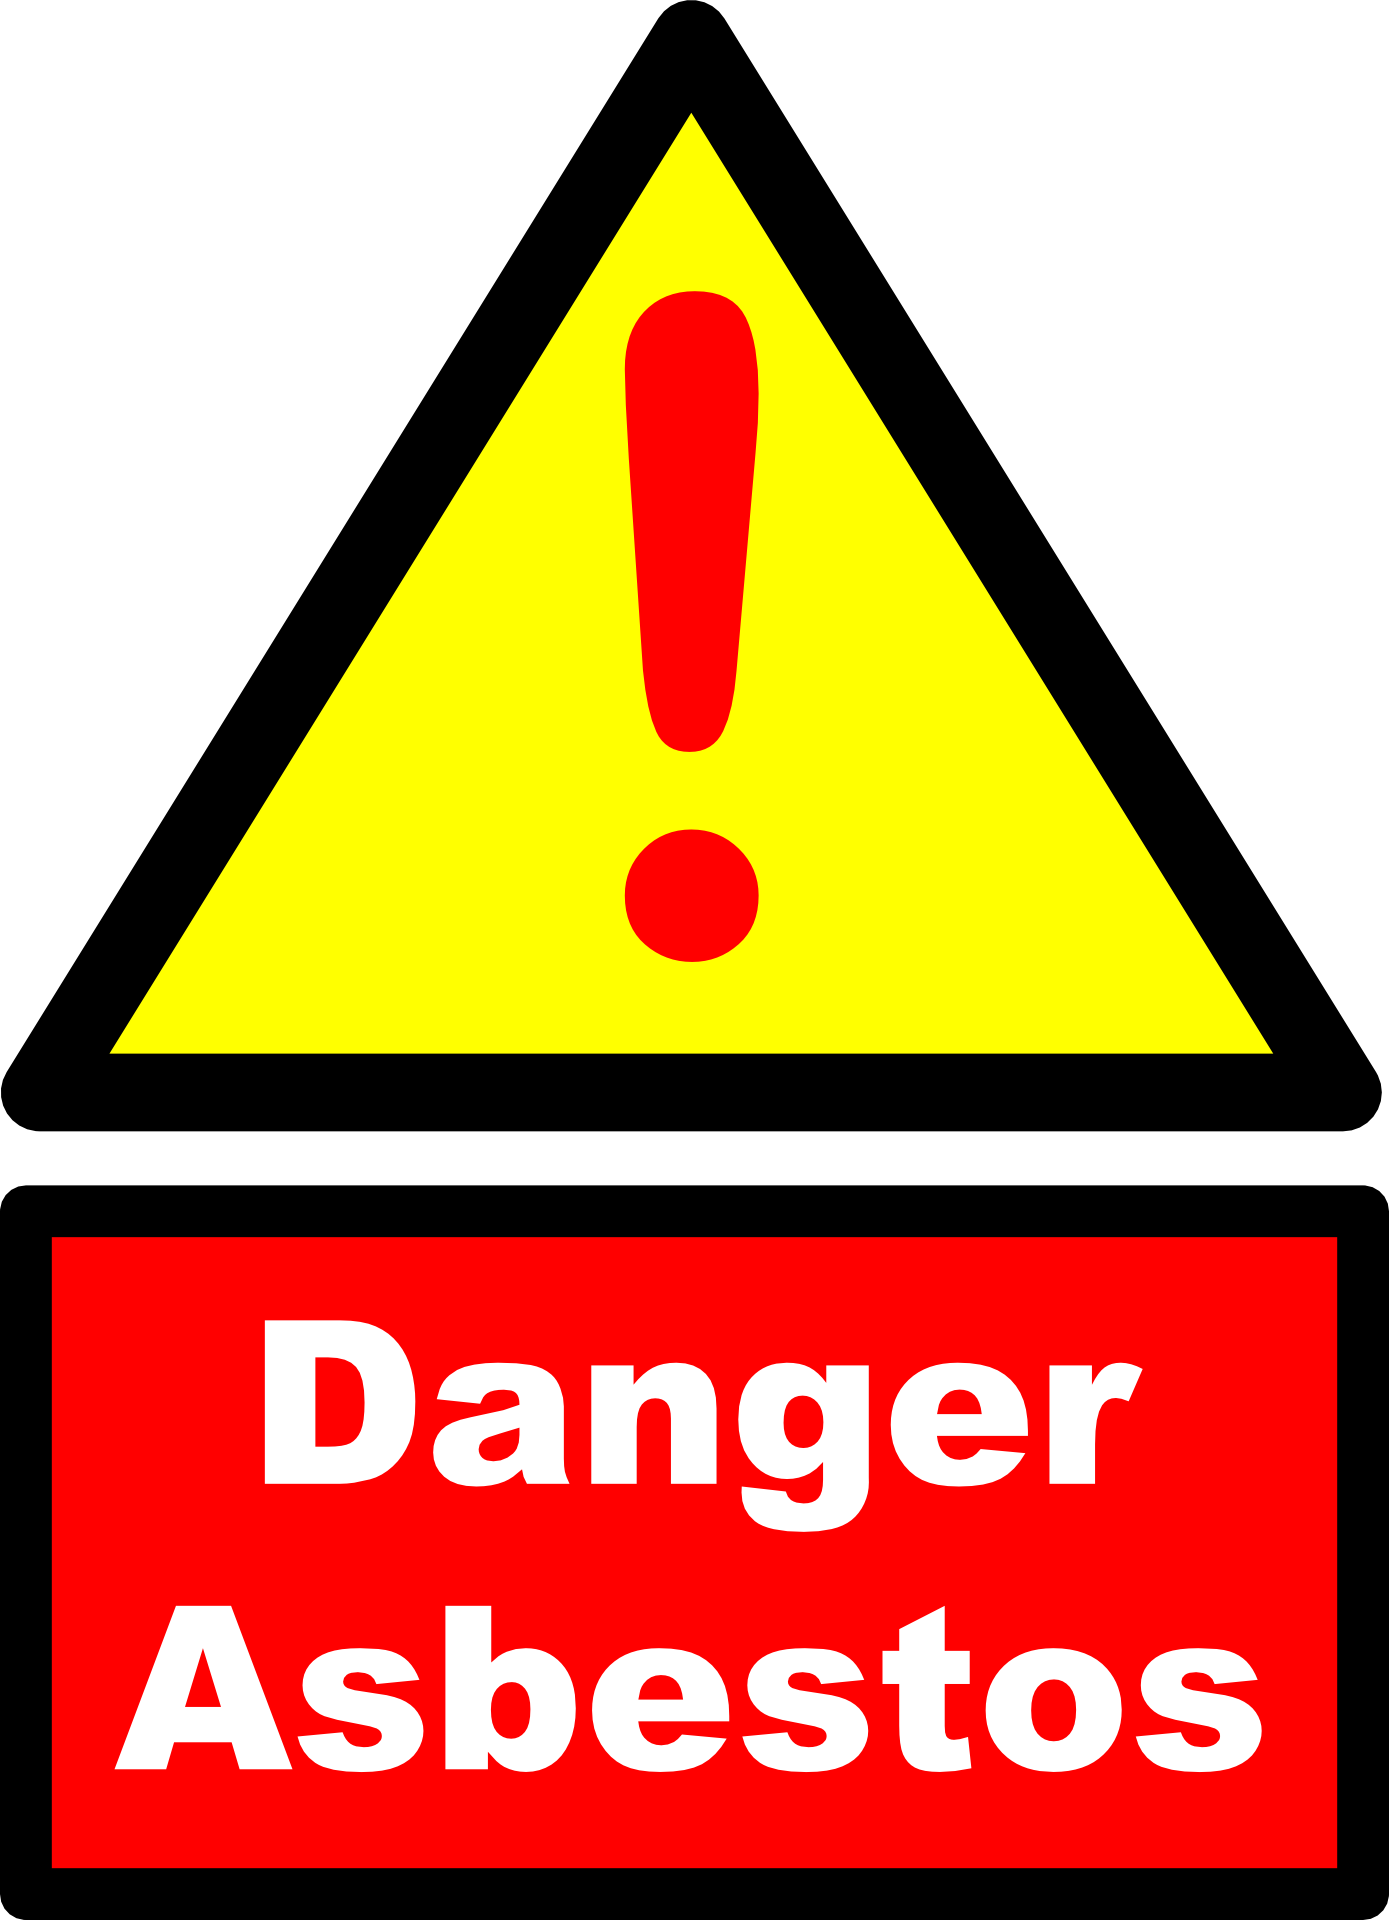 """Danger Asbestos"" sign"